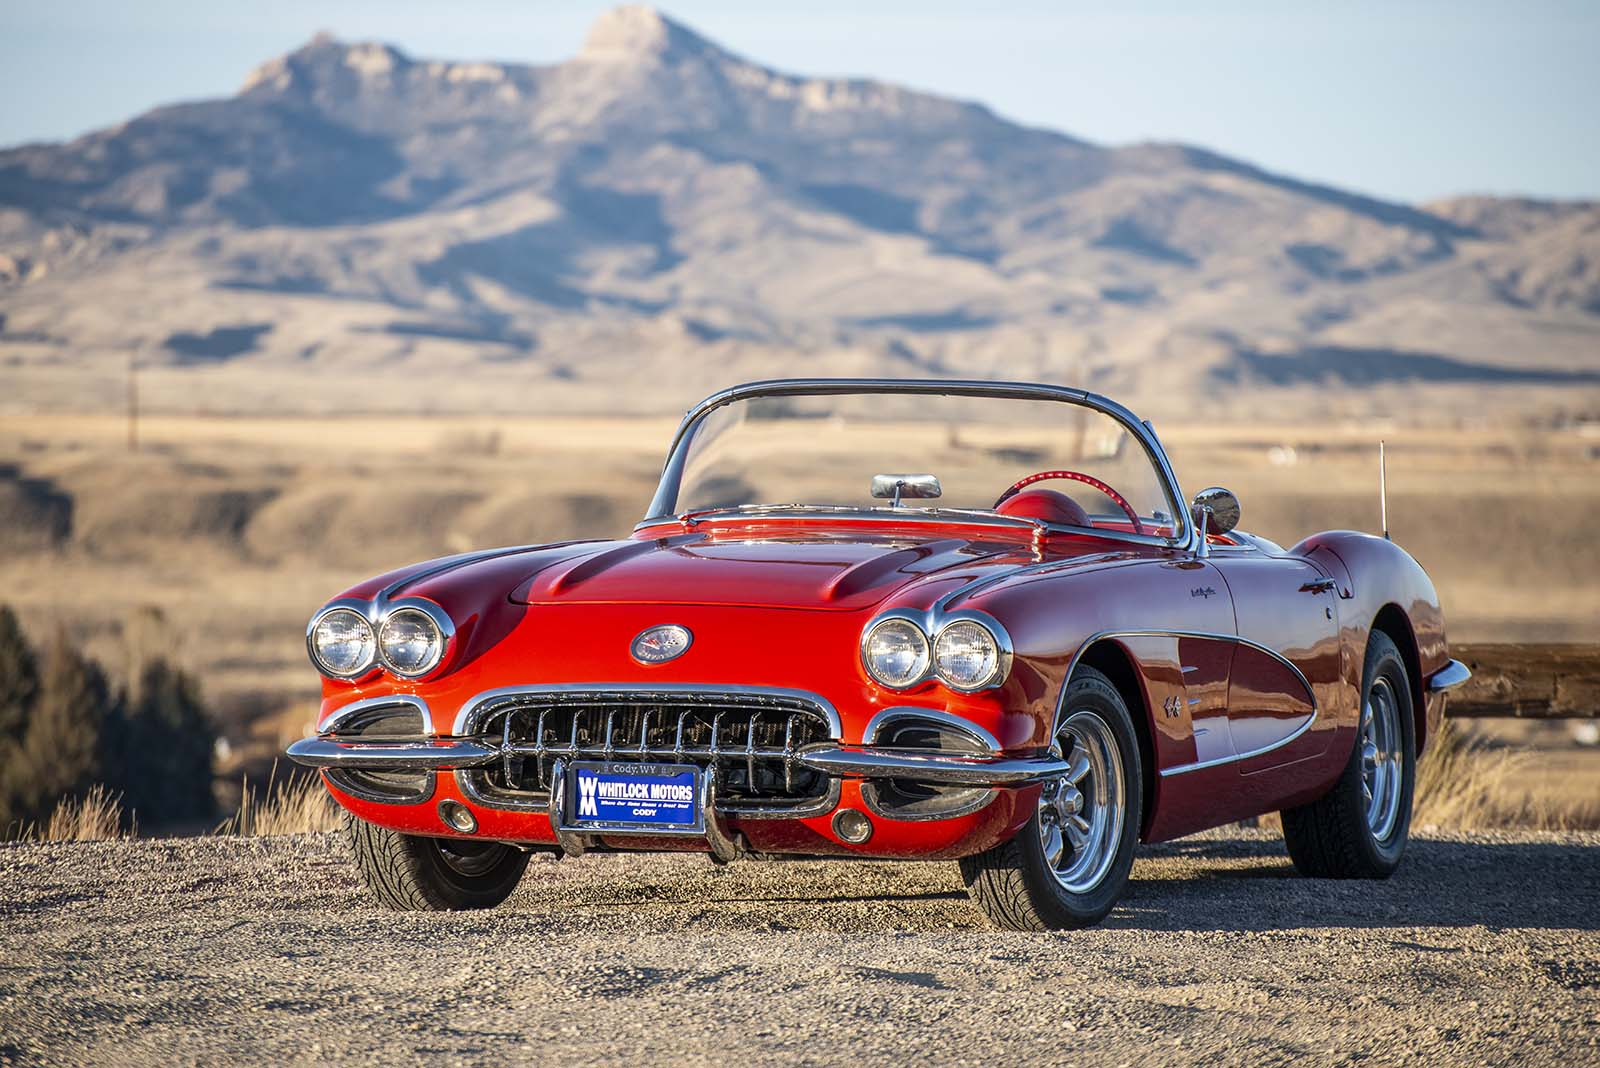 Points West blog 315: Corvette with Heart Mountain in background